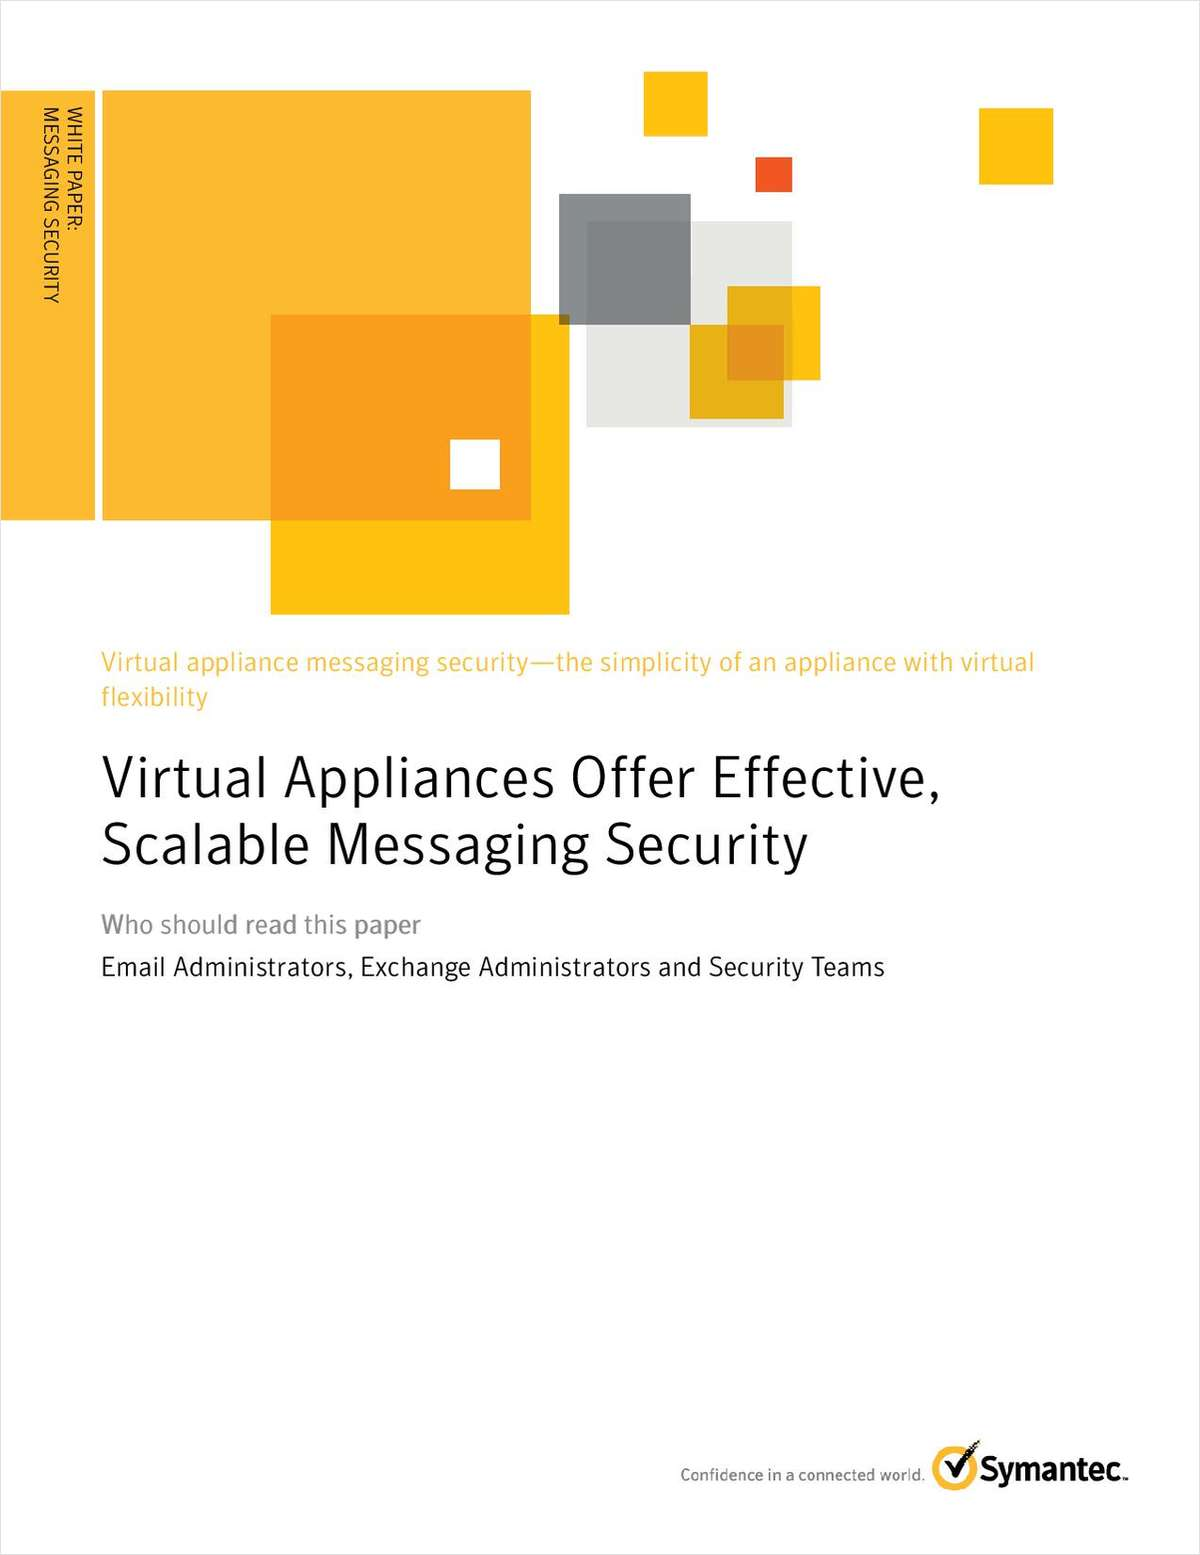 Virtual Appliances Offer Effective, Scalable Messaging Security